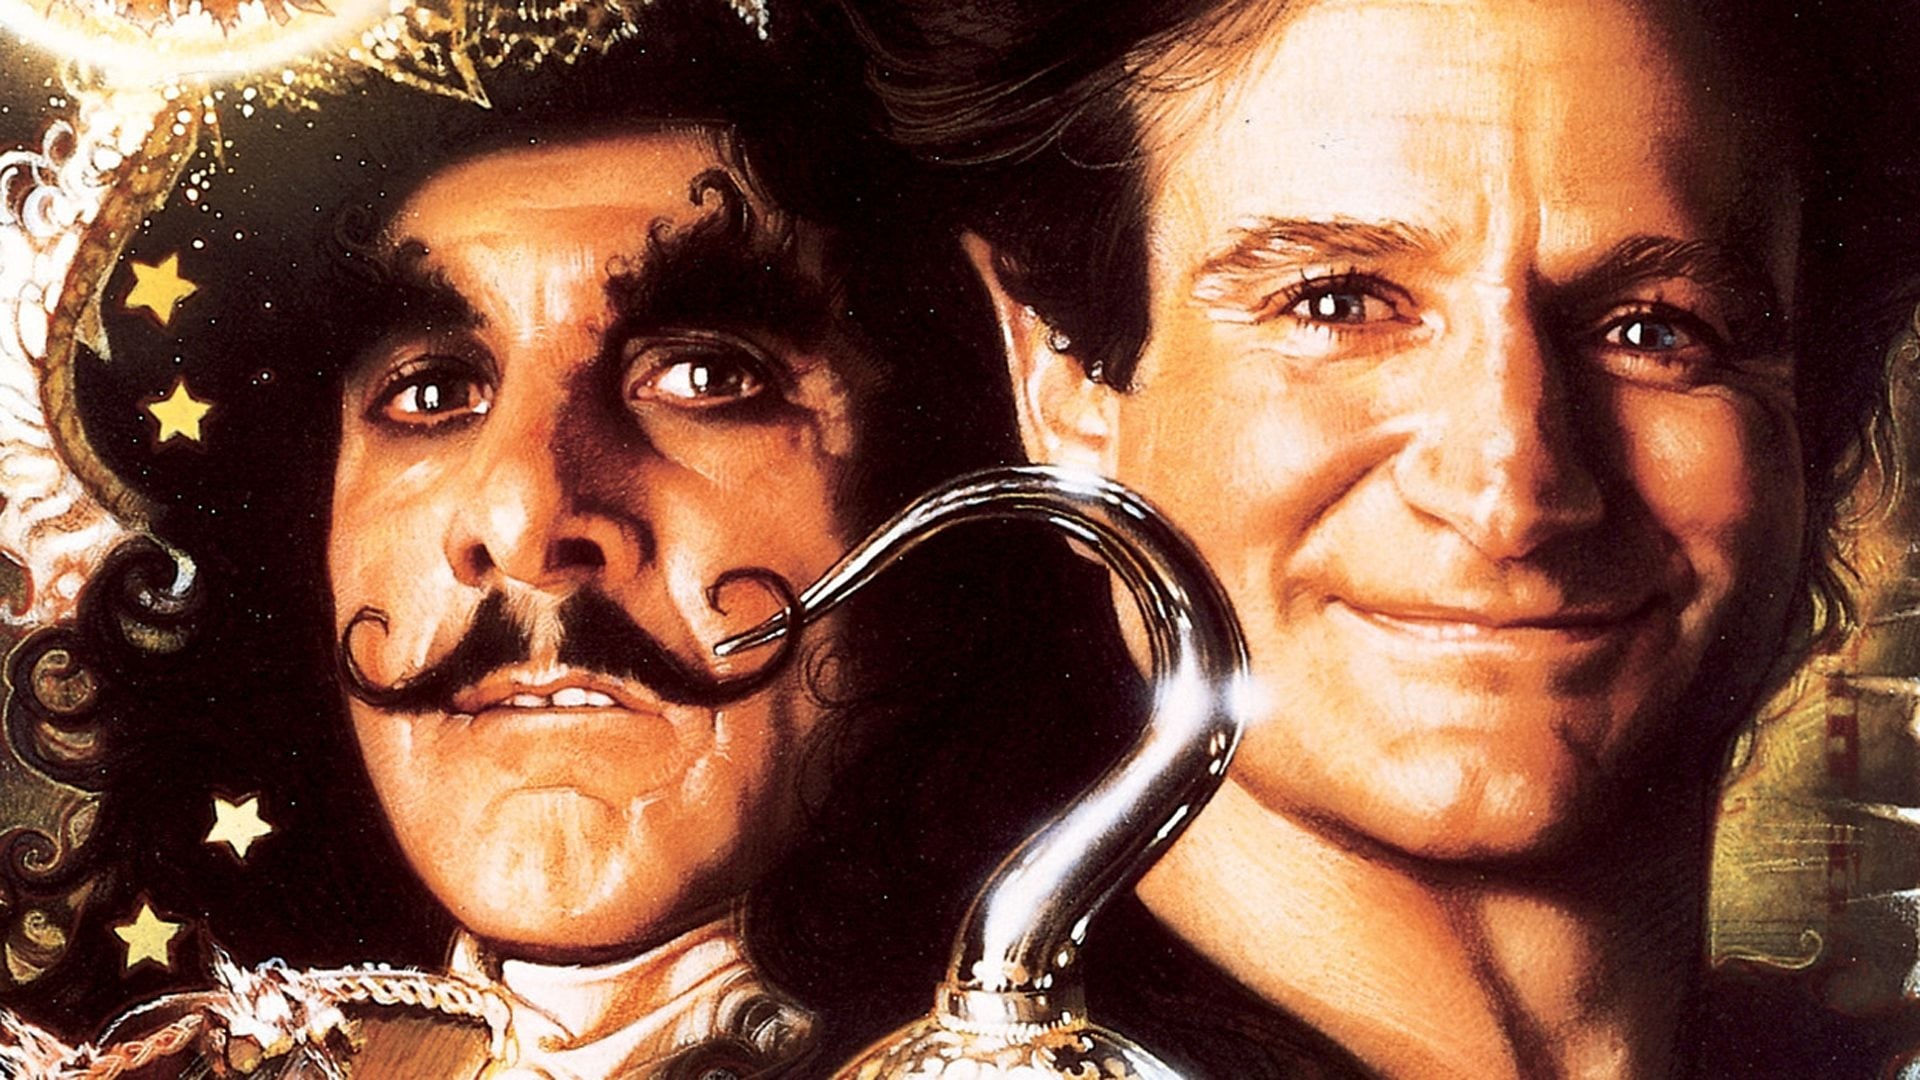 Still from the poster for the movie Hook showing Caption Hook and Peter Pan smiling. Between them is a hook